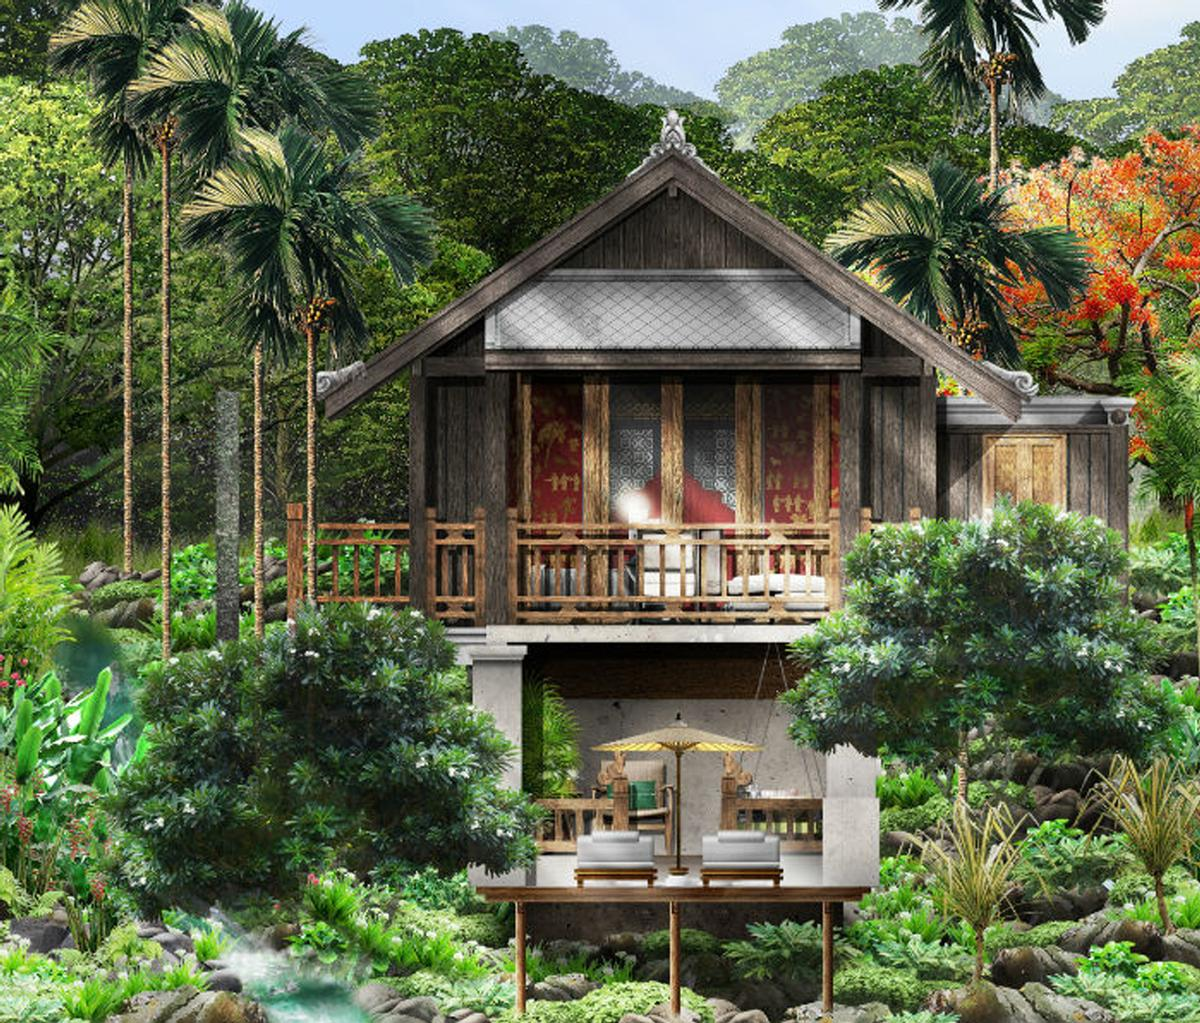 Each accommodation will be unique, but will showcase elements inspired by Lao tradition and French colonial style / Rosewood